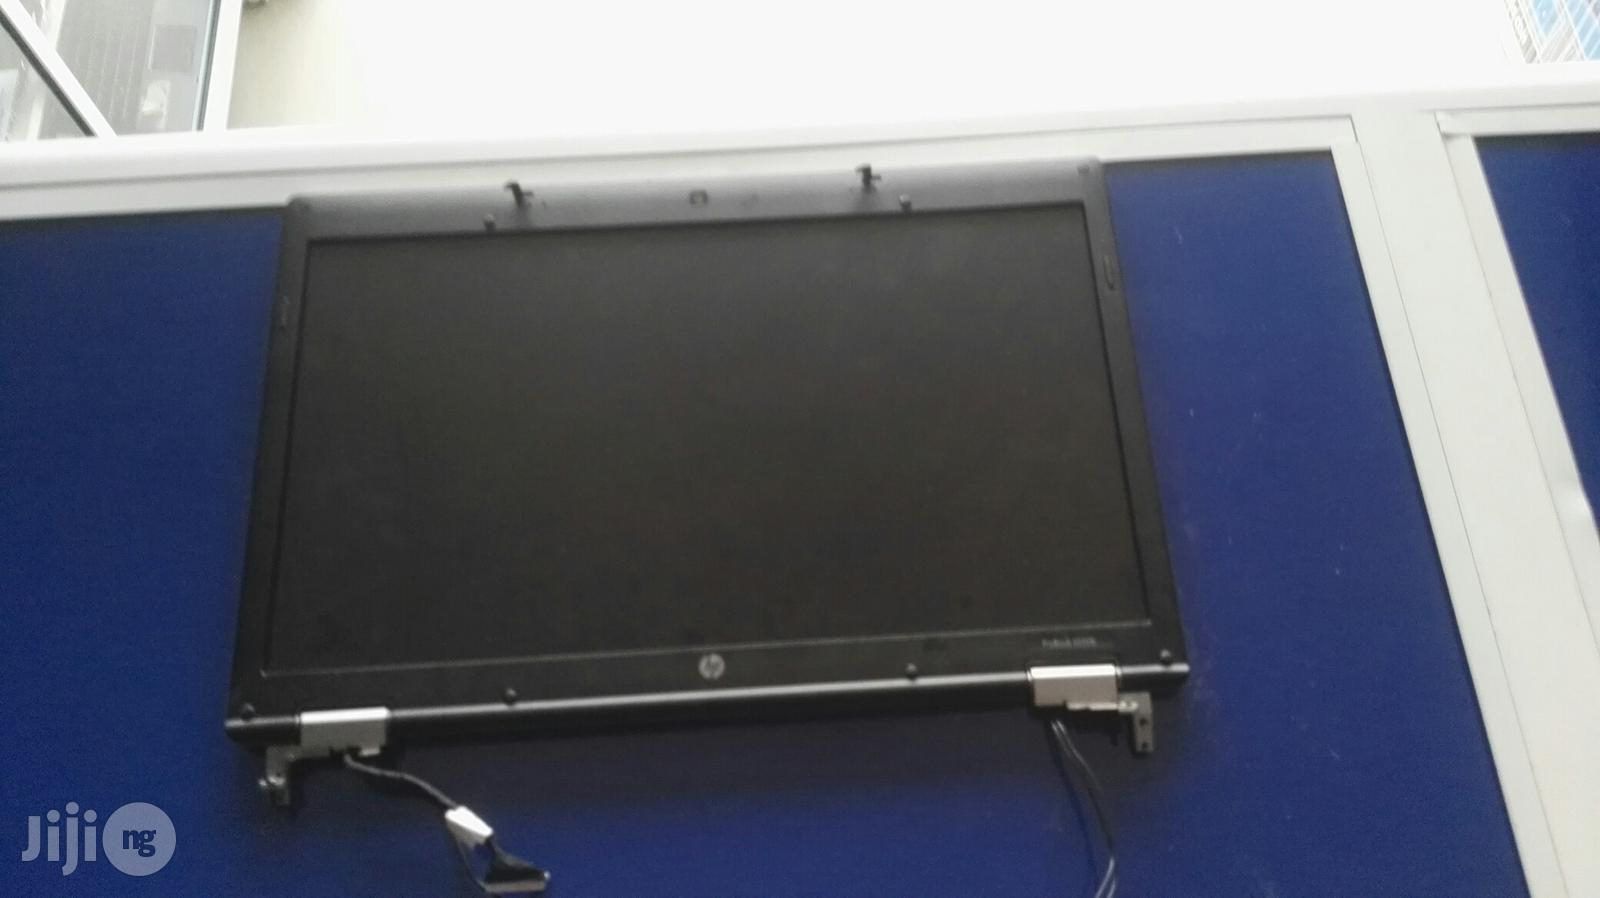 LCD Display Screen For HP Probook 6550b, 15.6inch Led-screen